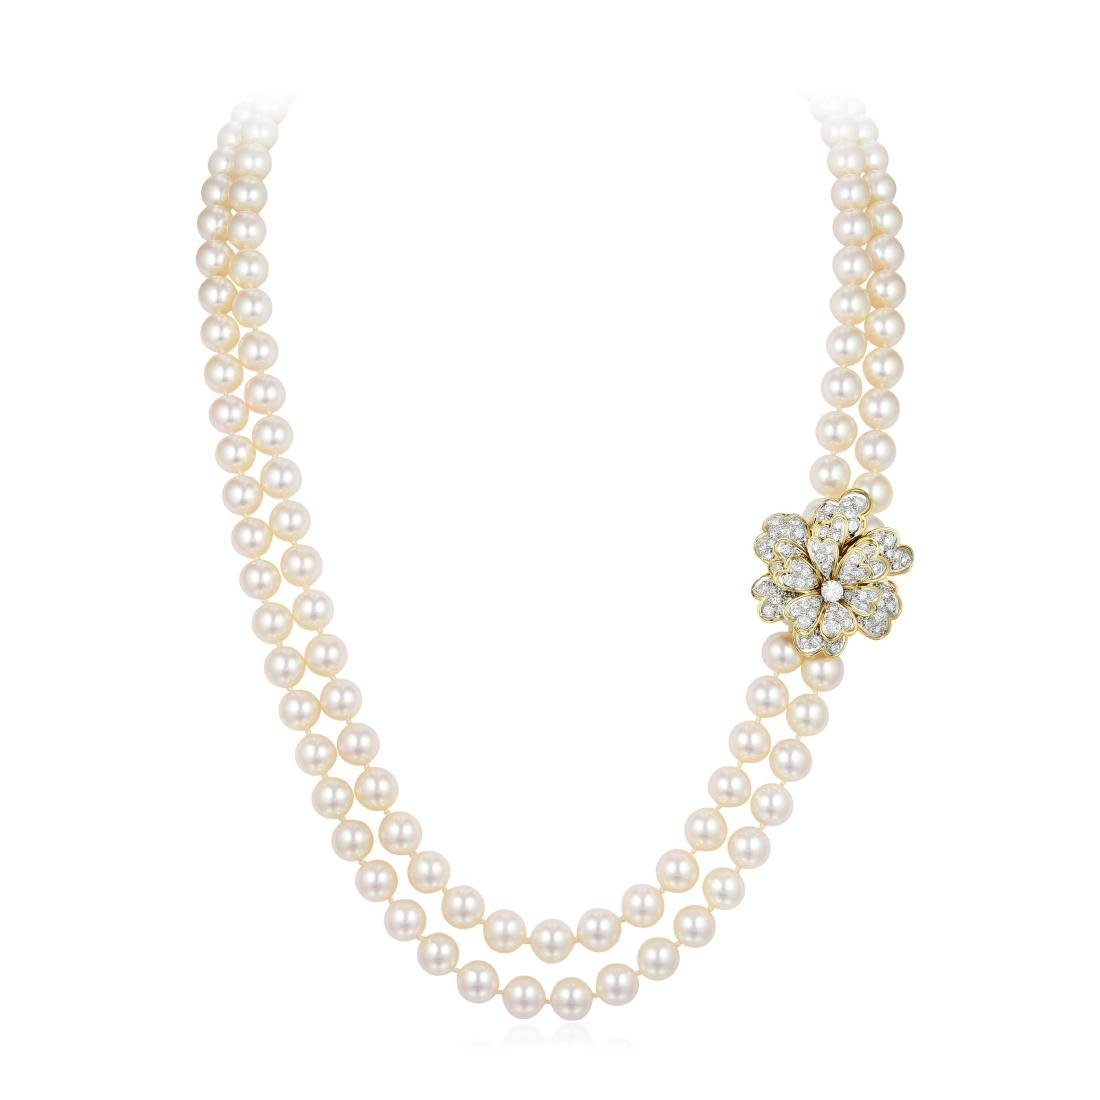 A Cultured Pearl Necklace with Diamond Enhancer/Brooch